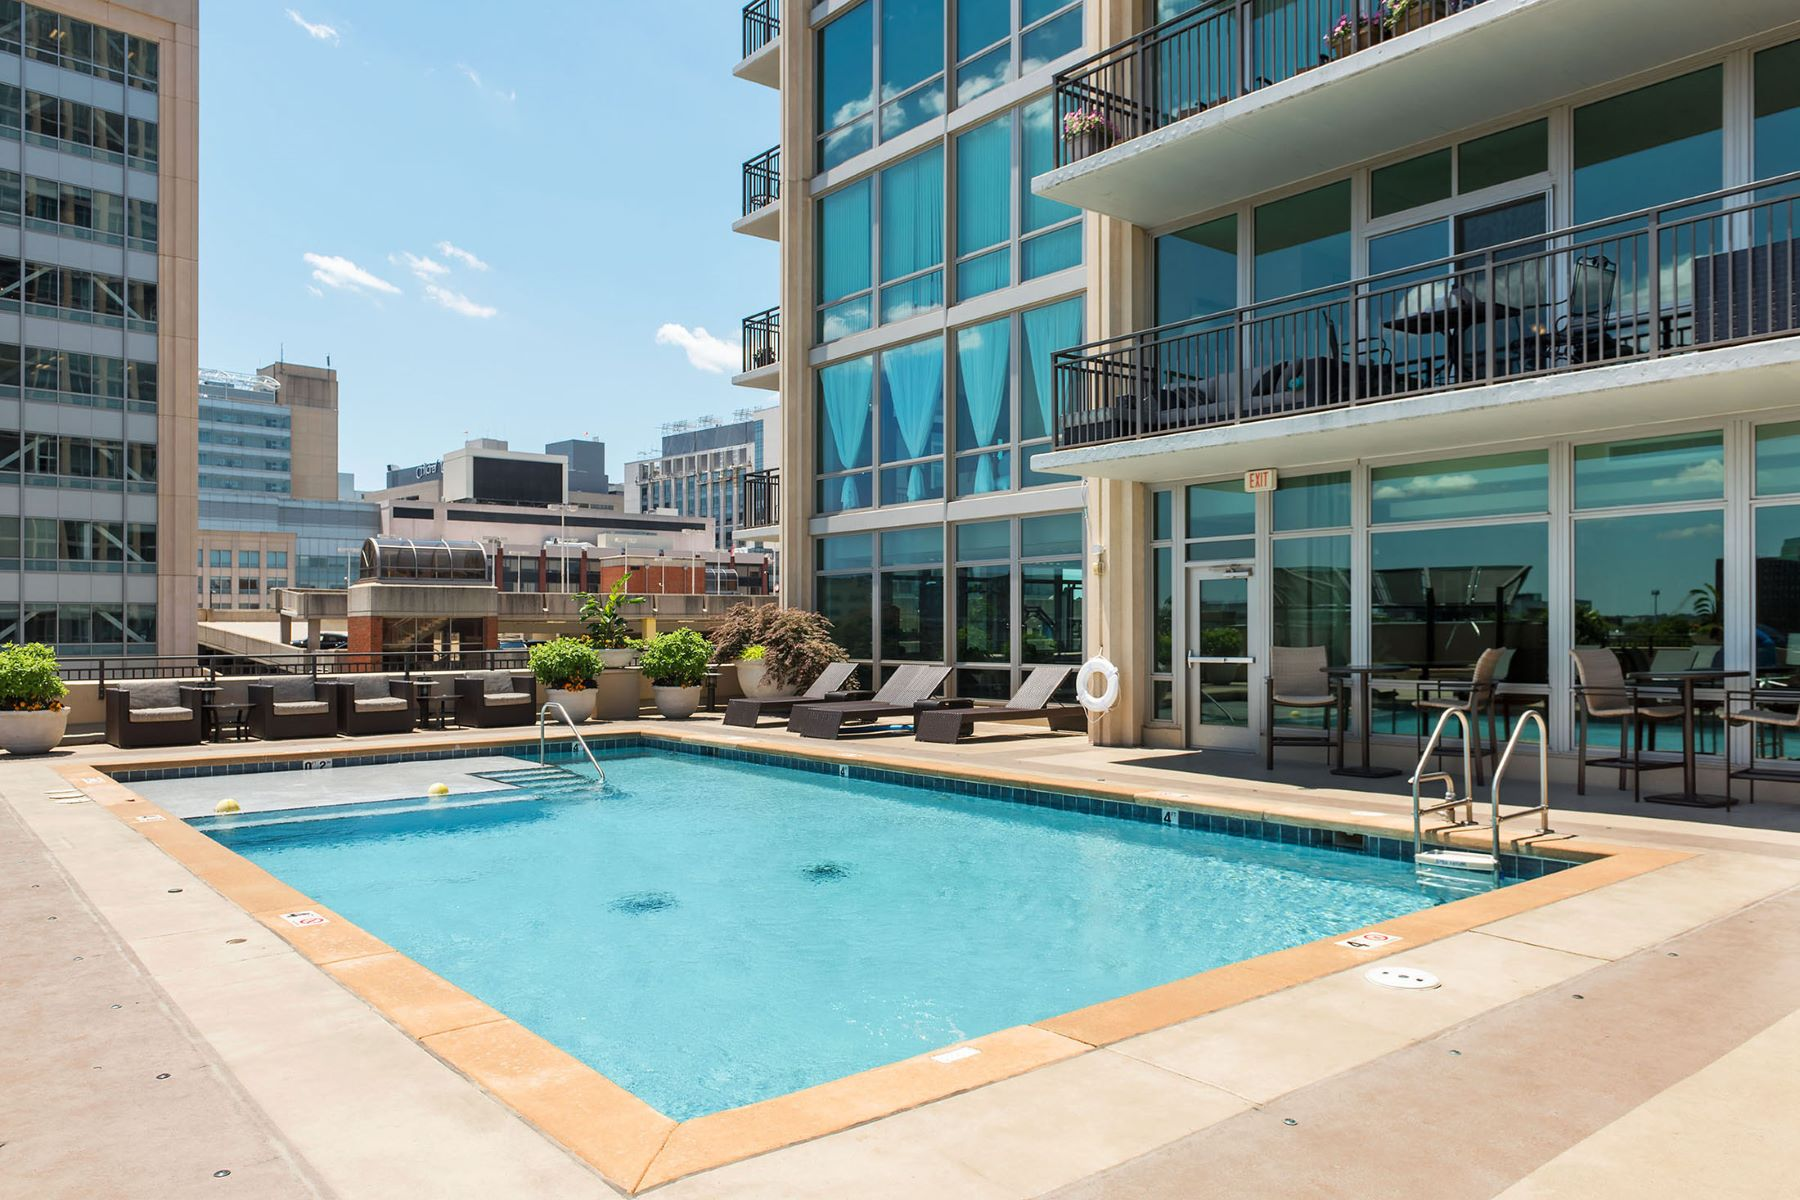 Additional photo for property listing at Laclede Ave 4909 Laclede Ave # 1001 St. Louis, Missouri 63108 United States